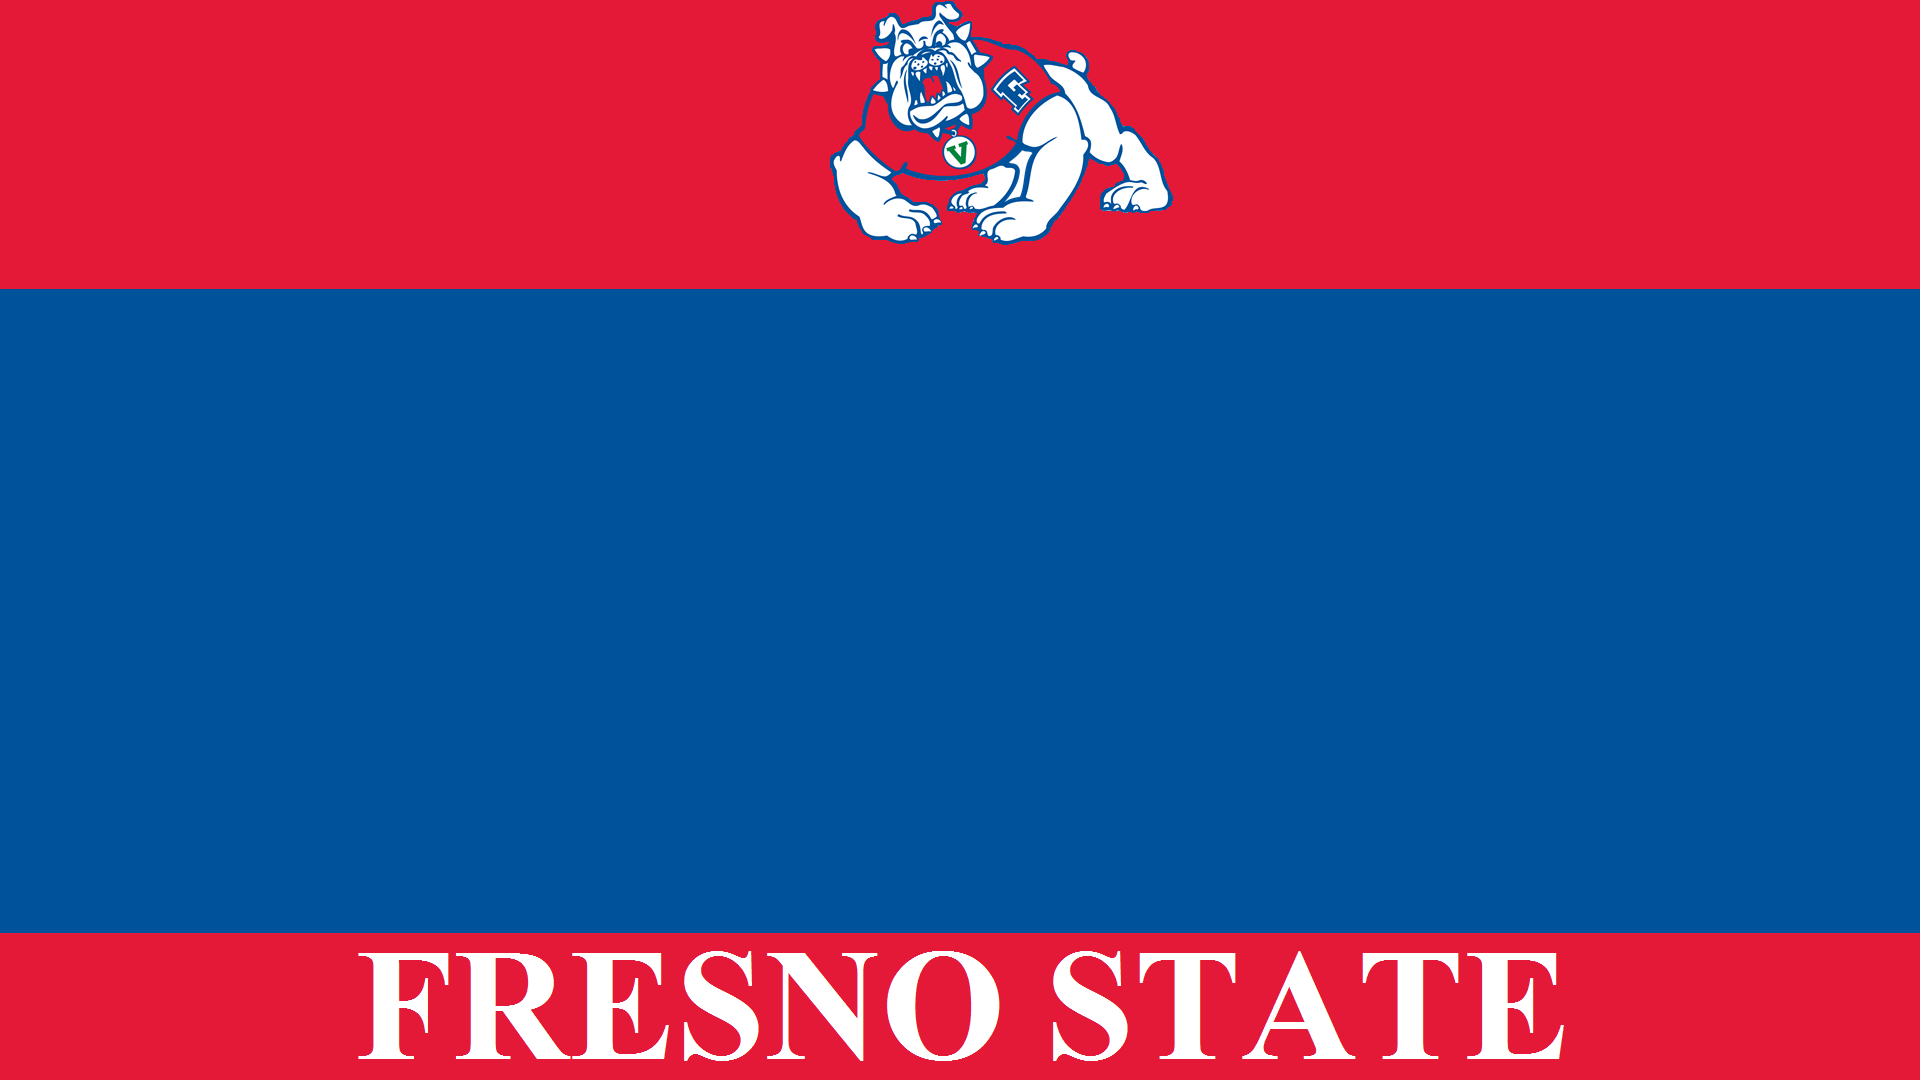 Fresno State Background for your Xbox One! (Details and how-to in